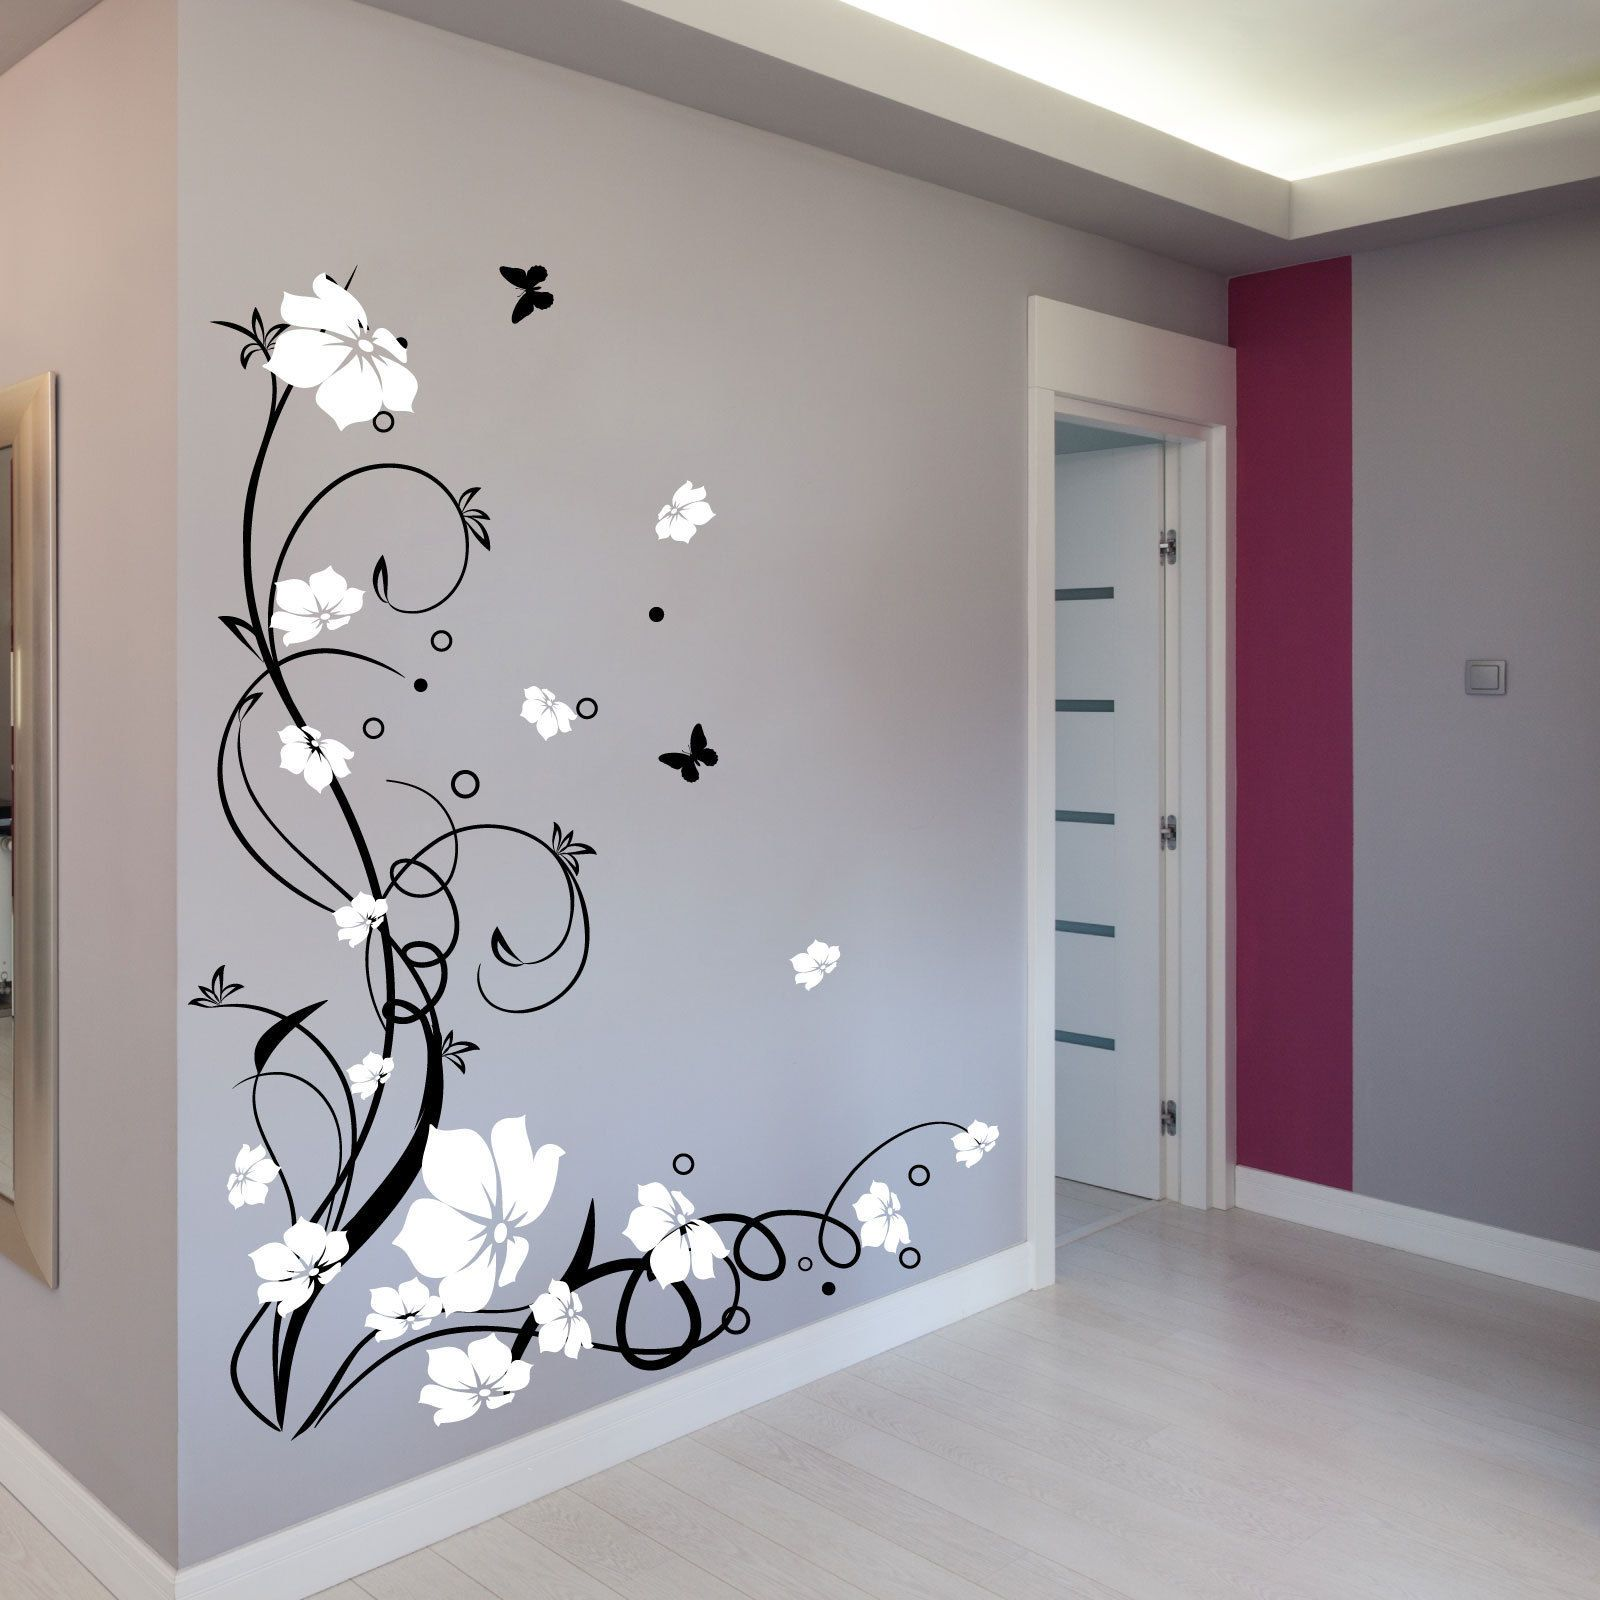 Painting walls ideas wall decals - Dettagli Su Grande Farfalla Vite Fiore Adesivi Da Parete Da Muro Decalcomania Large Wall Stencilwall Stencilingflower Wall Stickerspainting Wallswall